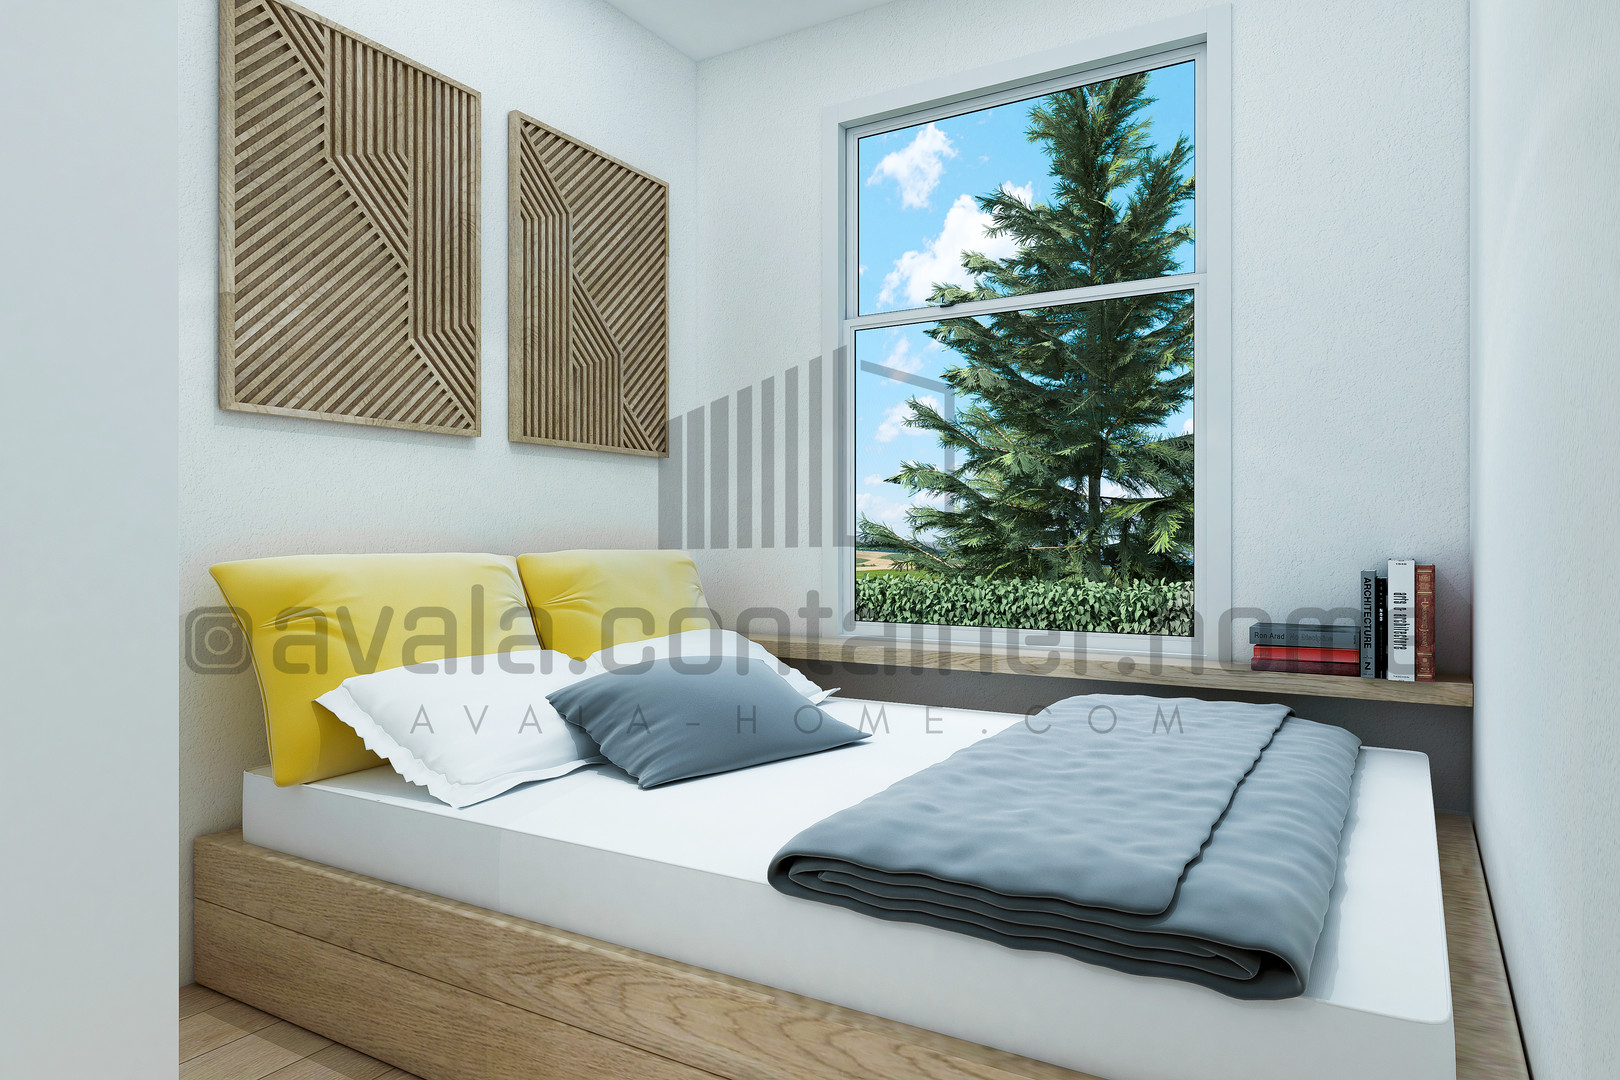 copyright-G33-bedroom copy.jpg